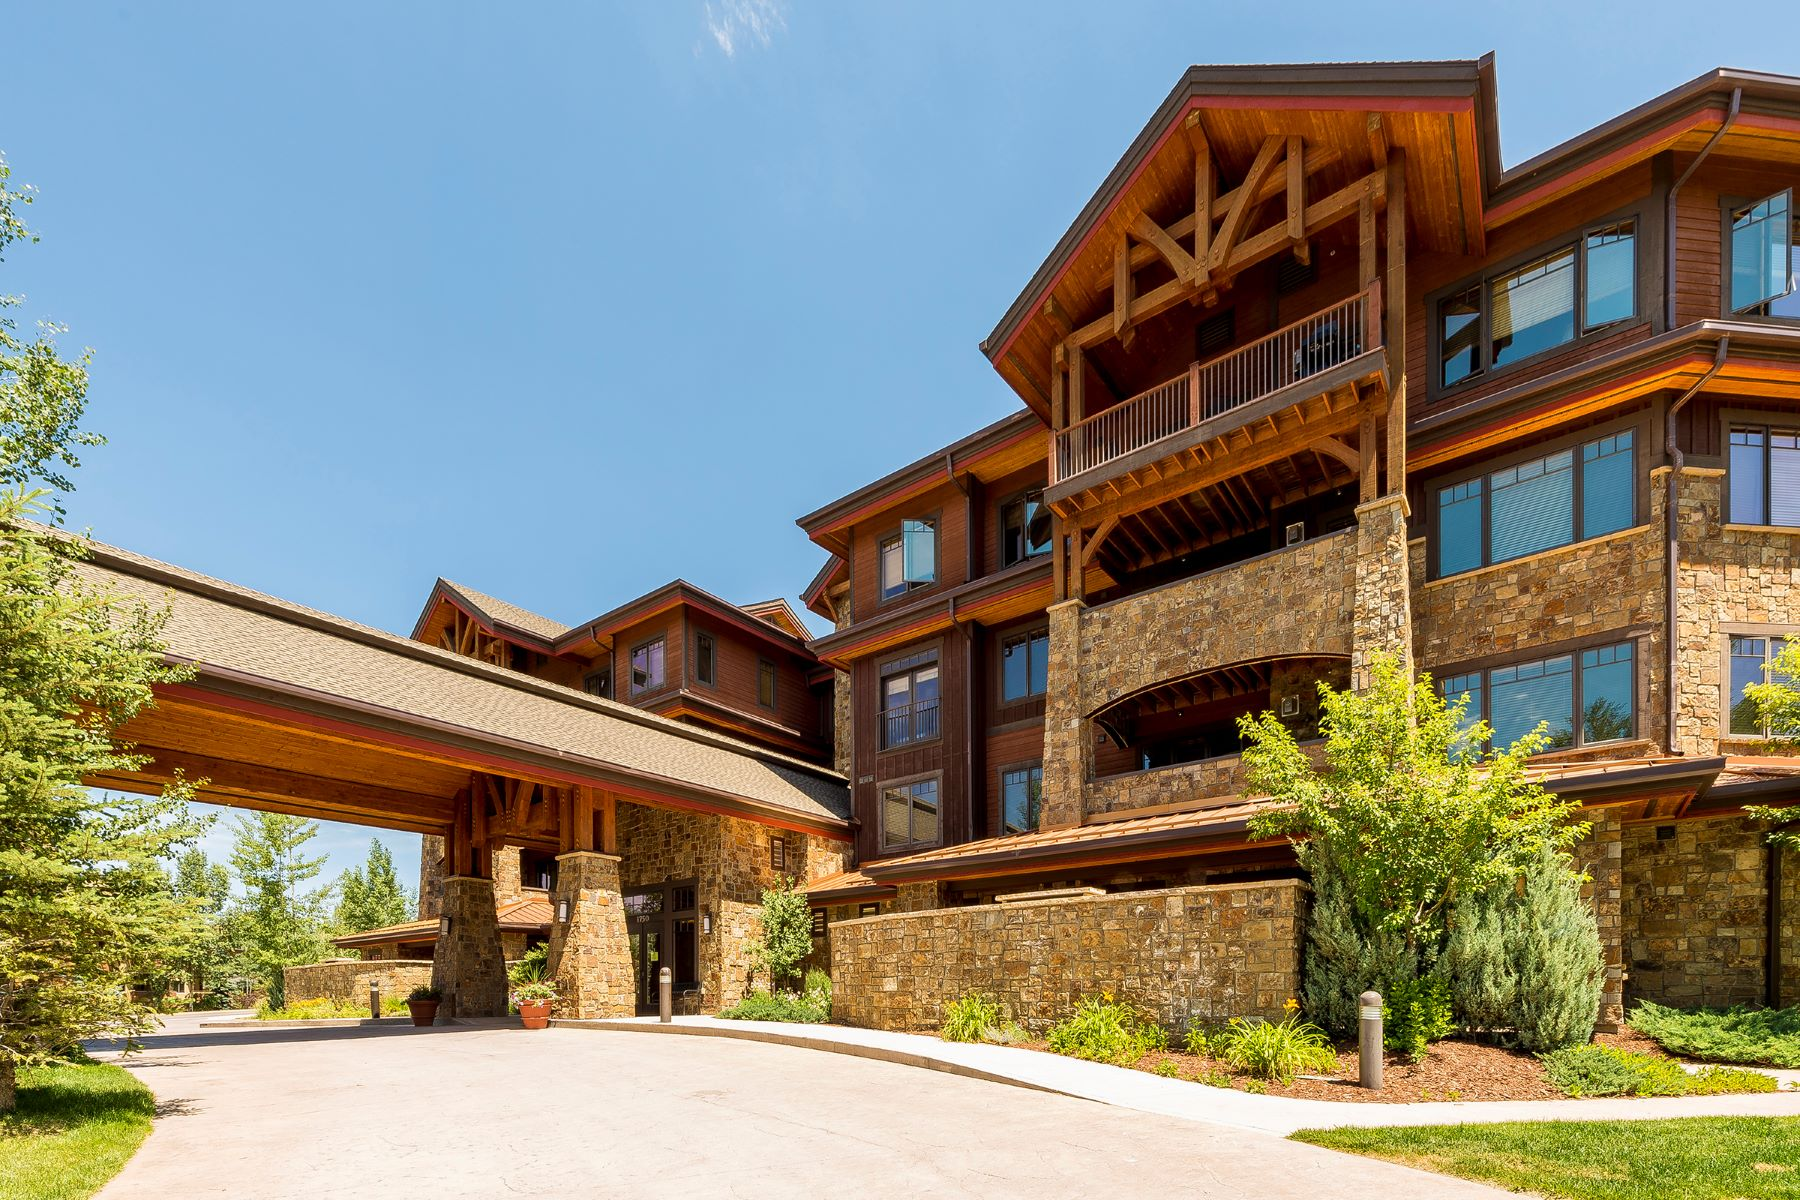 Кондоминиум для того Продажа на Comfortable Living at Bear Lodge 1750 Medicine Springs Drive 6210, Steamboat Springs, Колорадо, 80487 Соединенные Штаты